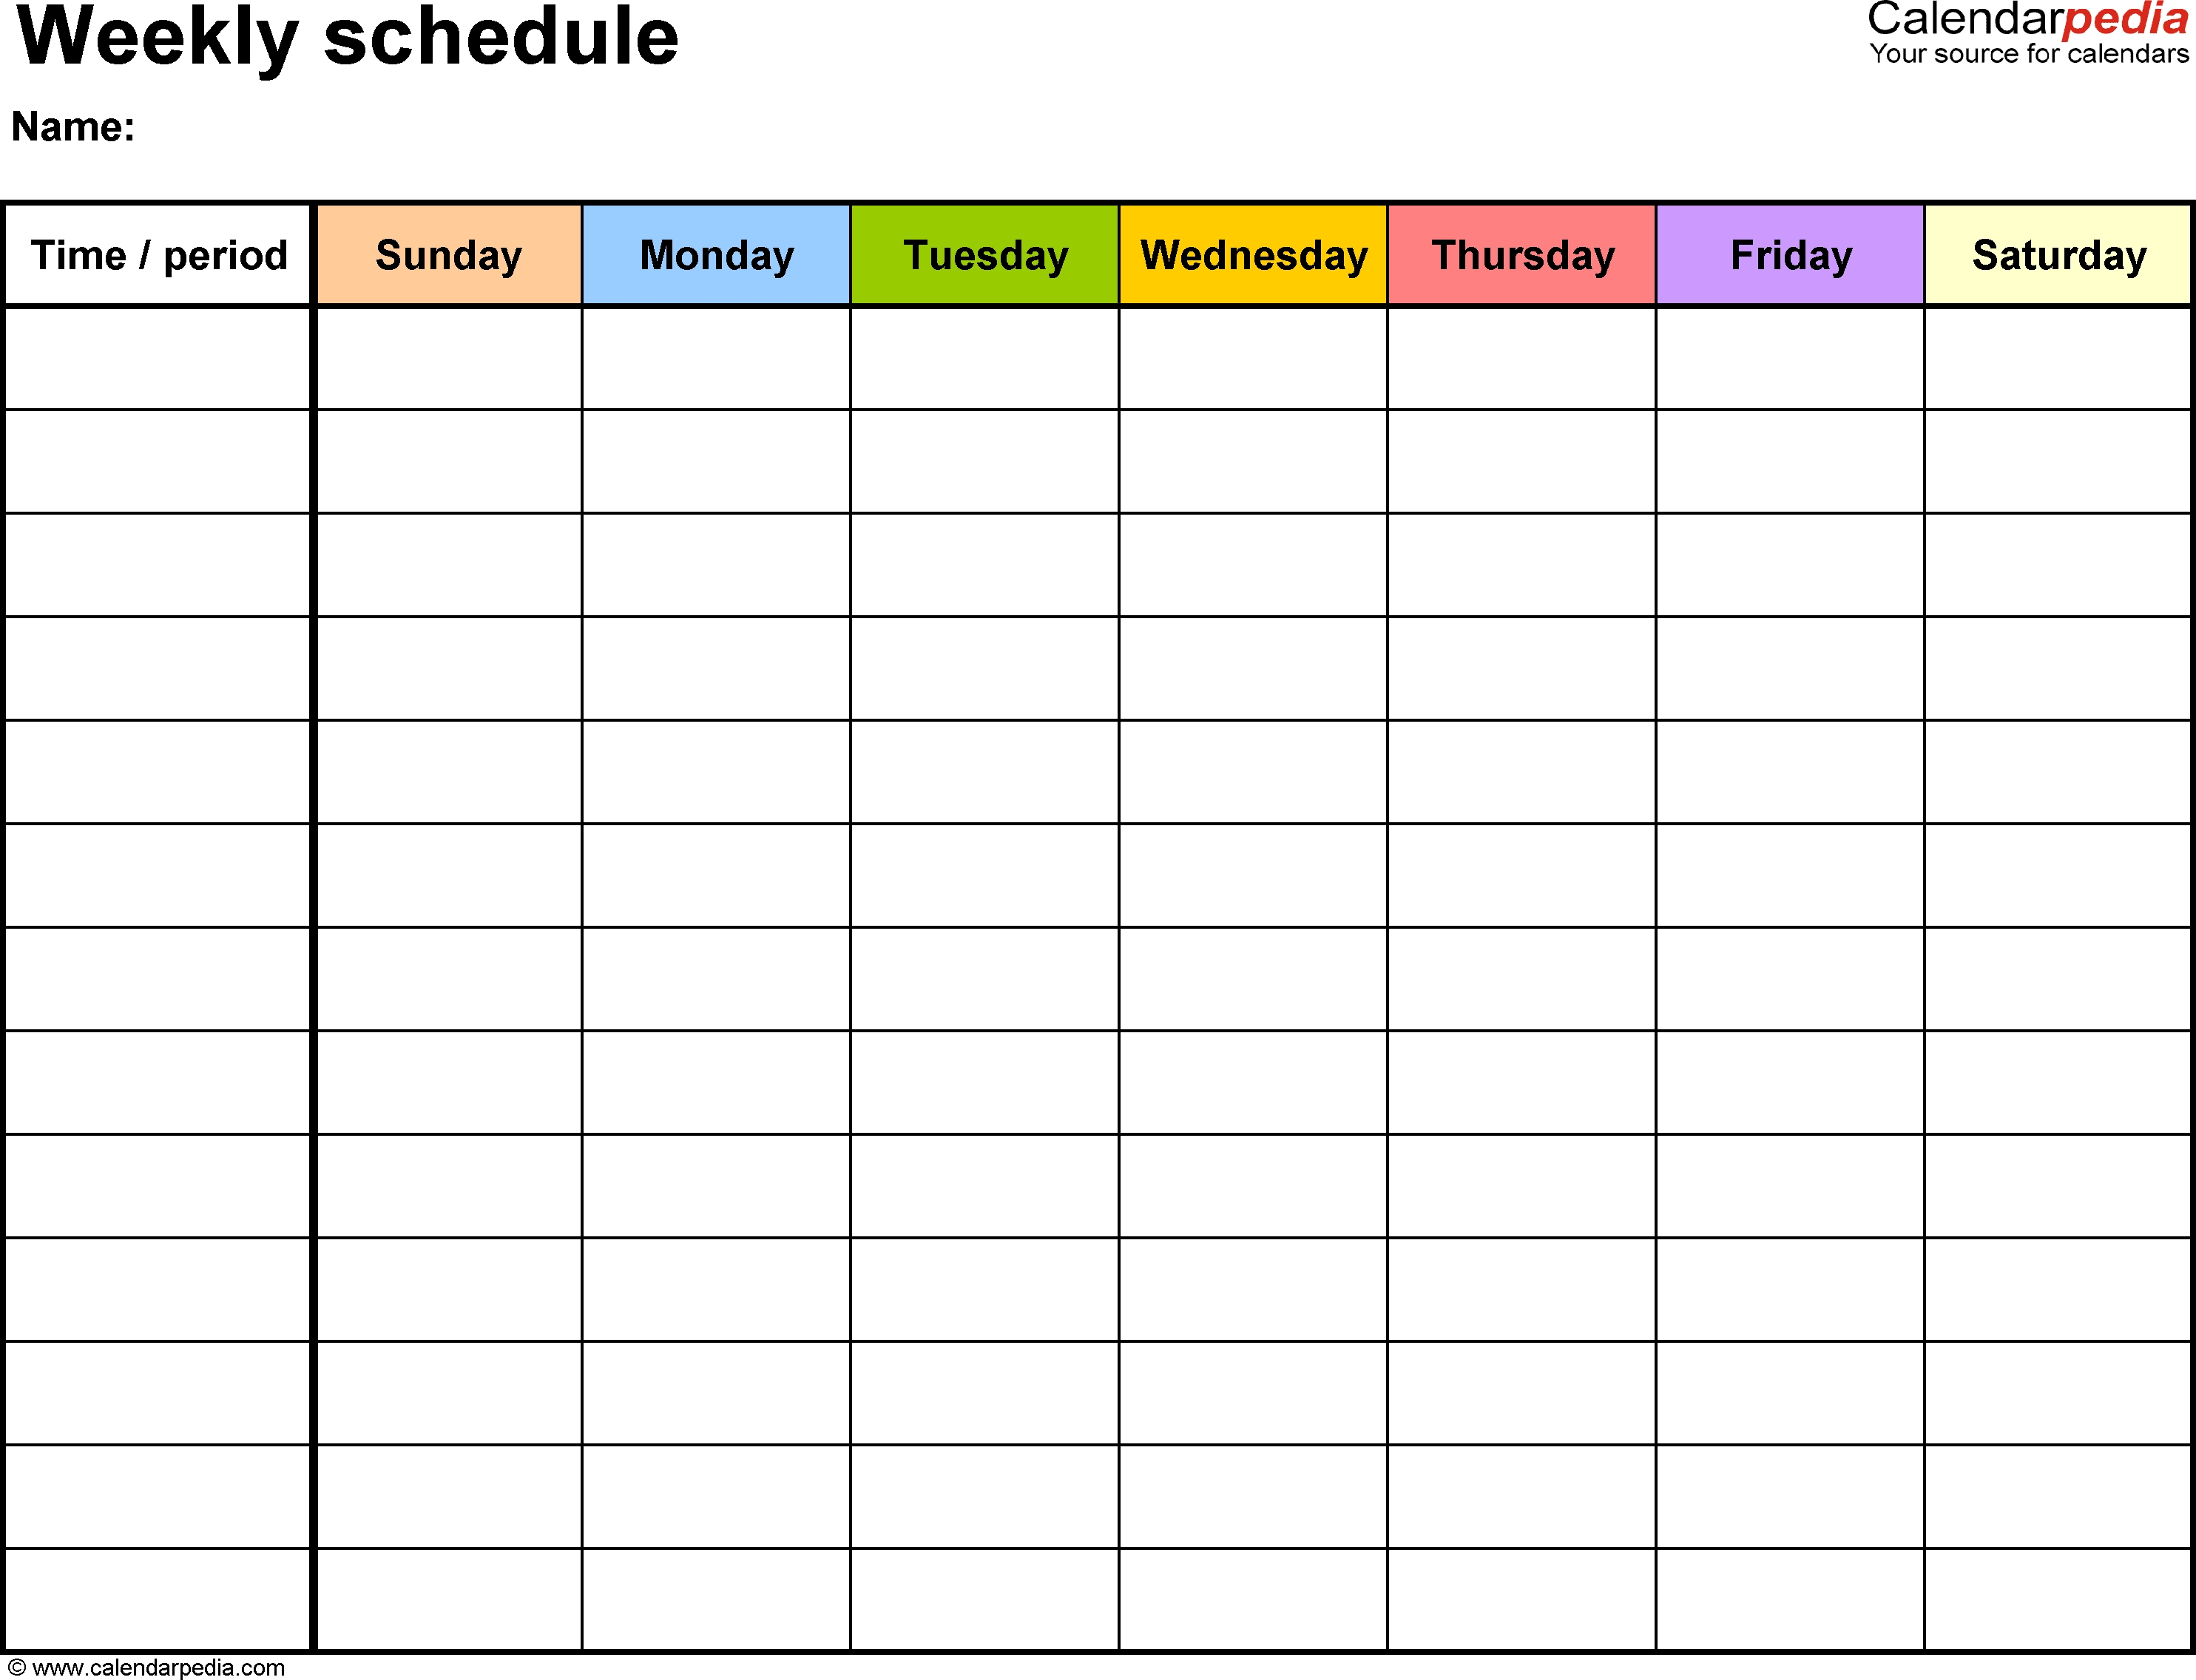 Weekly Schedule Template For Word Version 13: Landscape, 1-Blank 7 Day Calendar Template